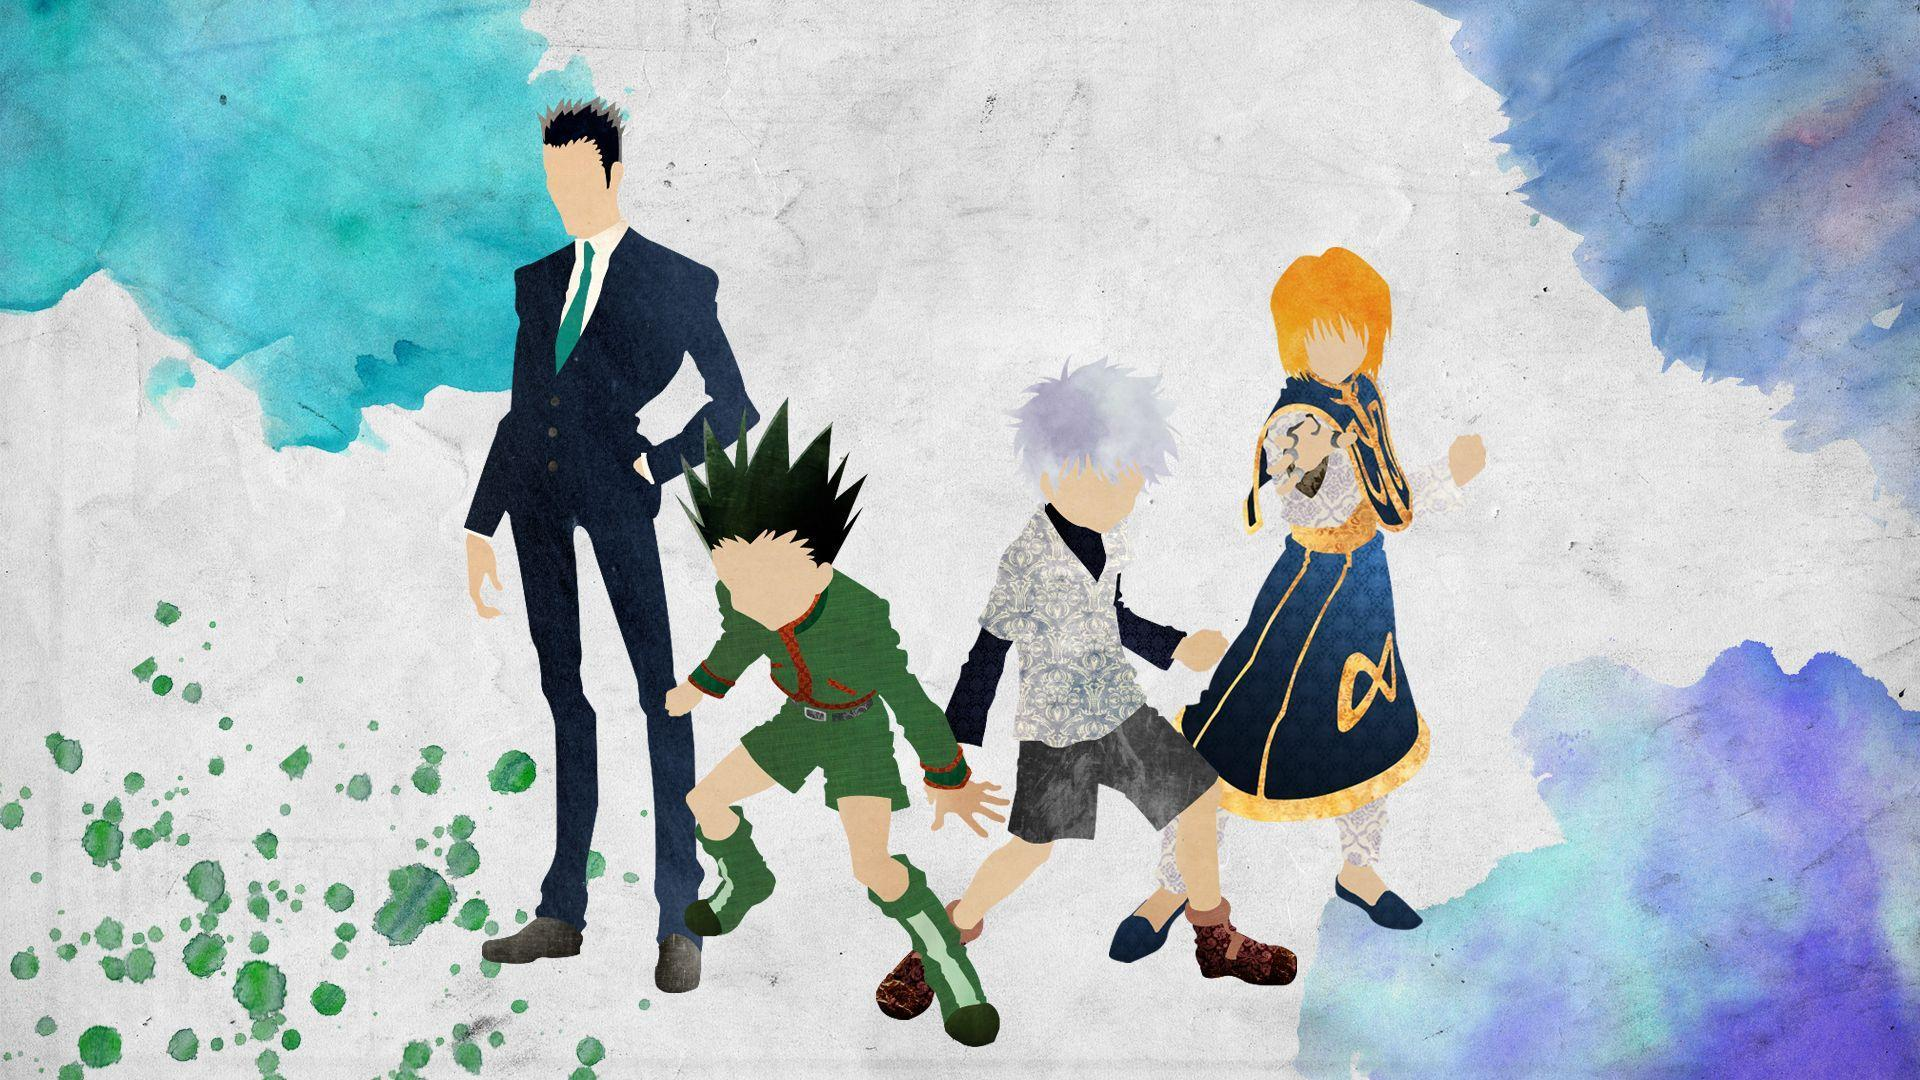 Hunter x Hunter Wallpaper | 1919x1079 | ID:57148